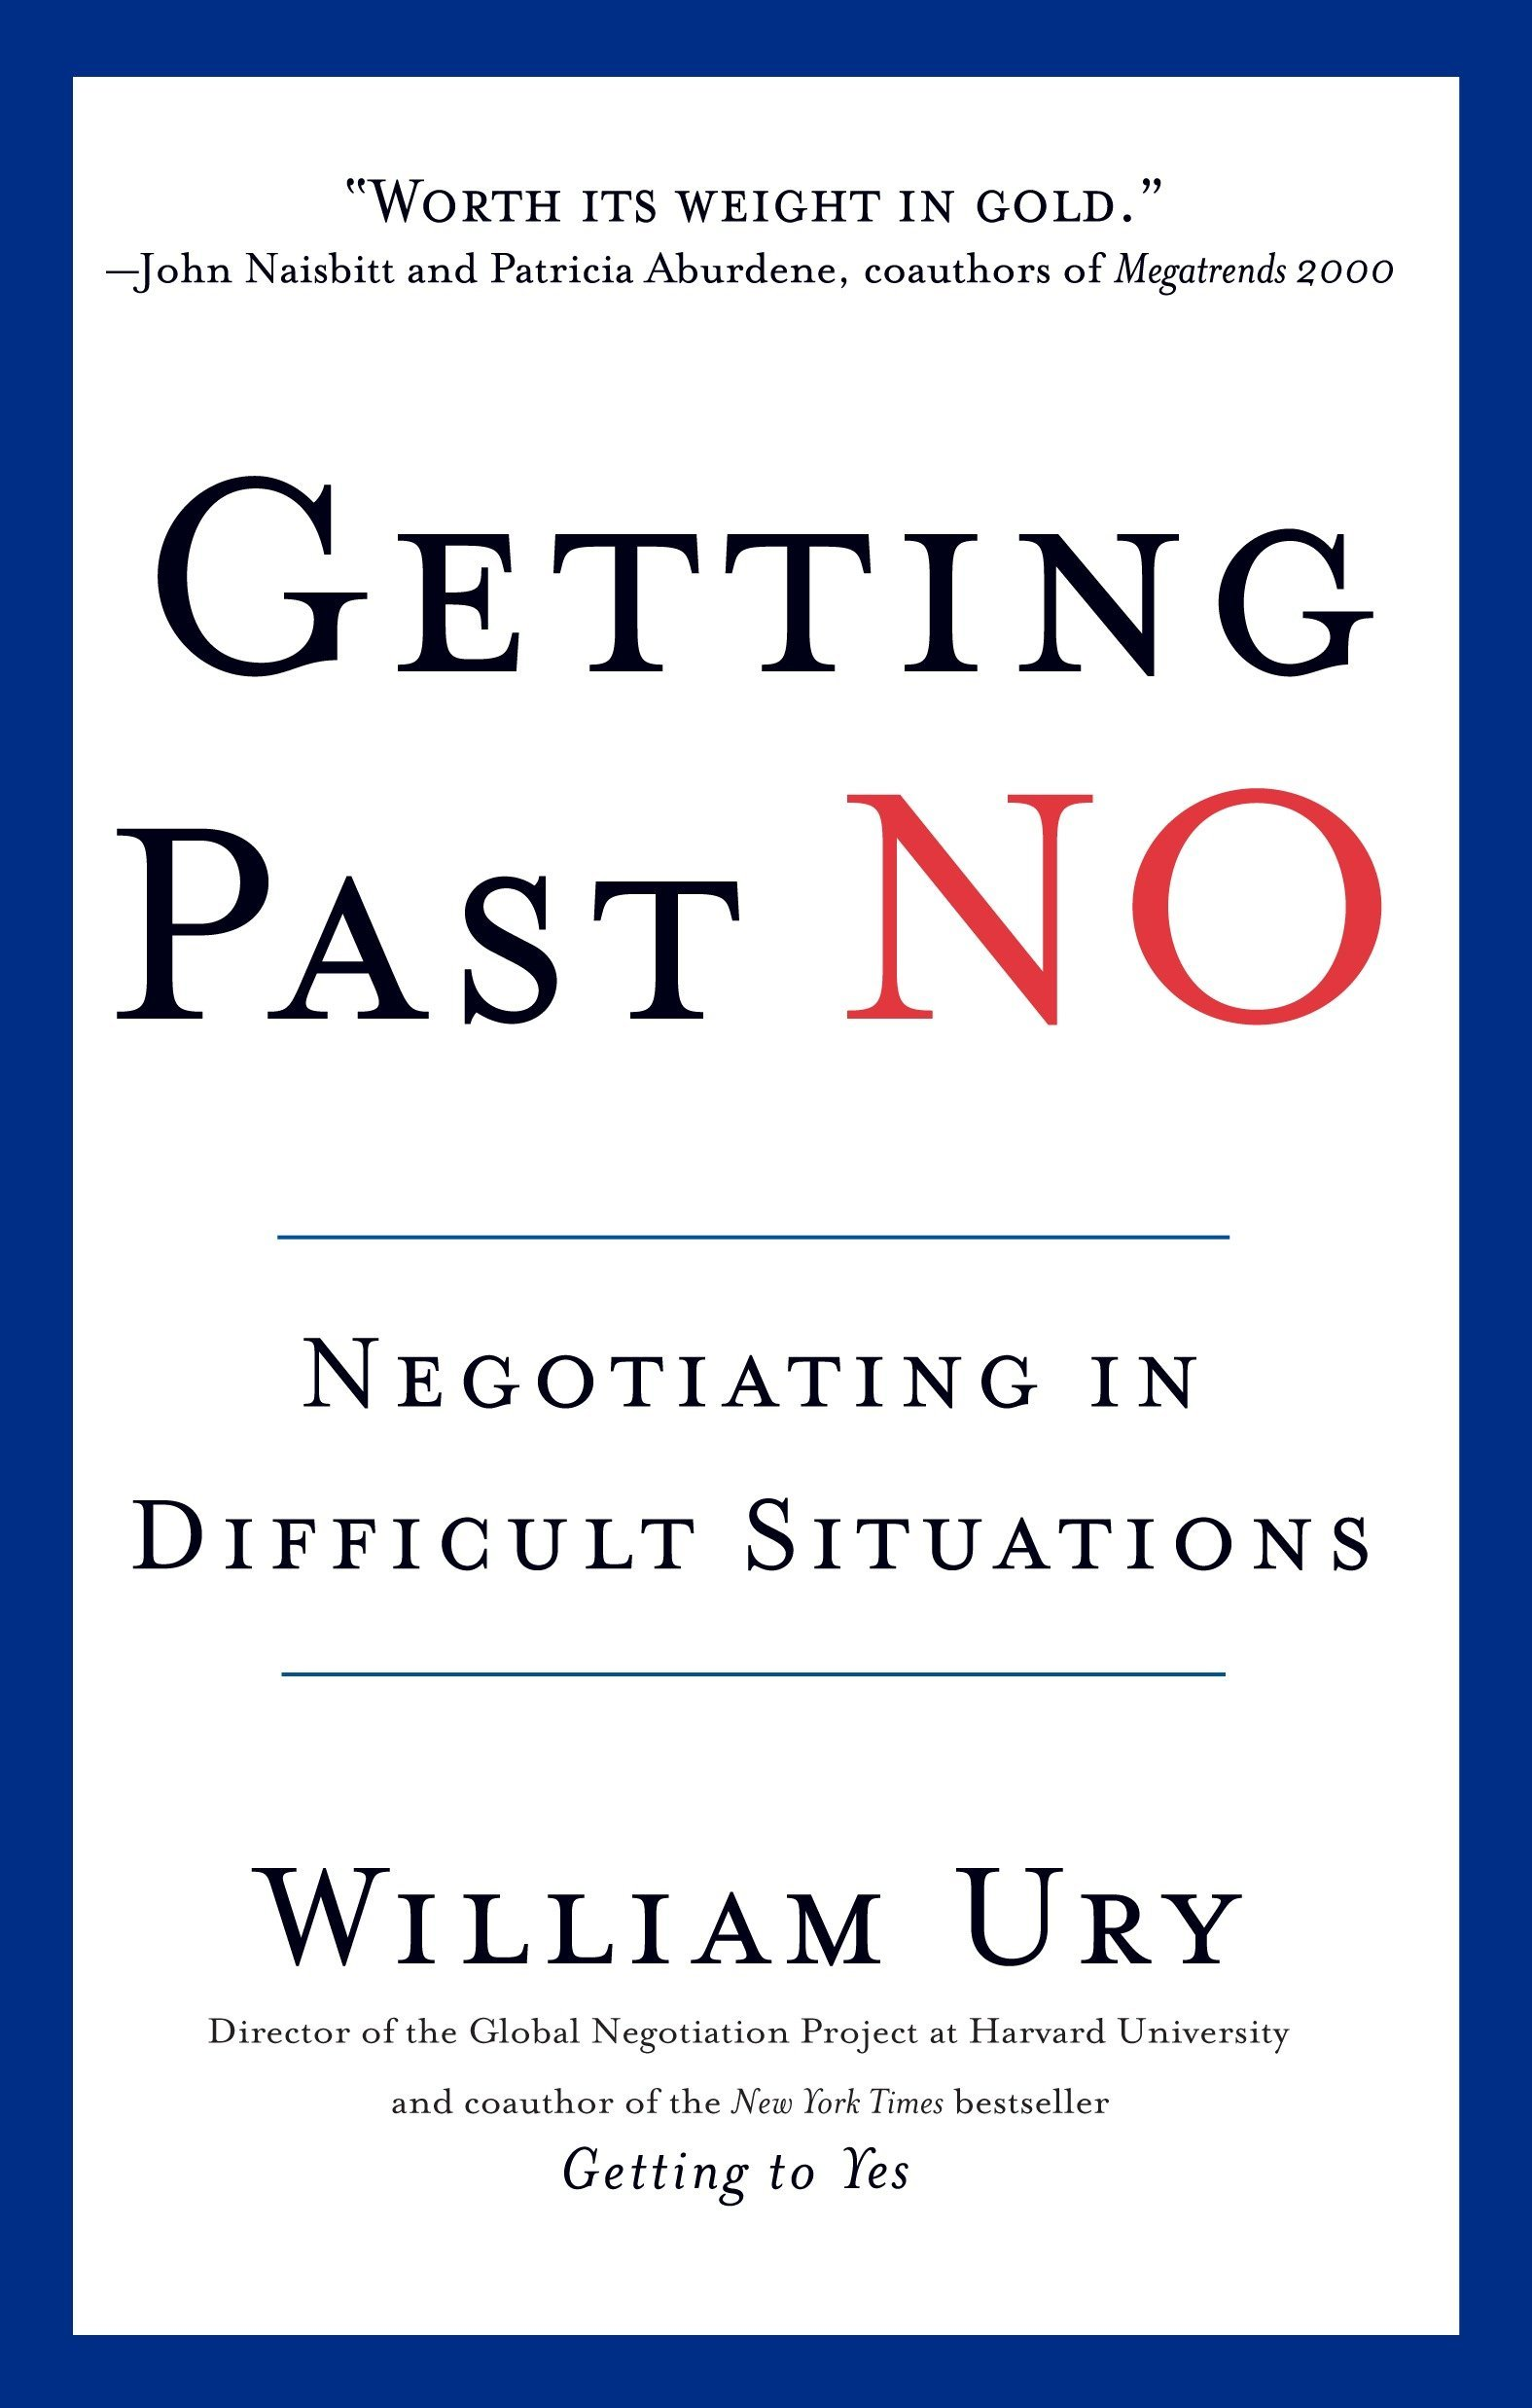 Getting Past No  Negotiating In Difficult Situations  Negotiating In Diffcult Situations